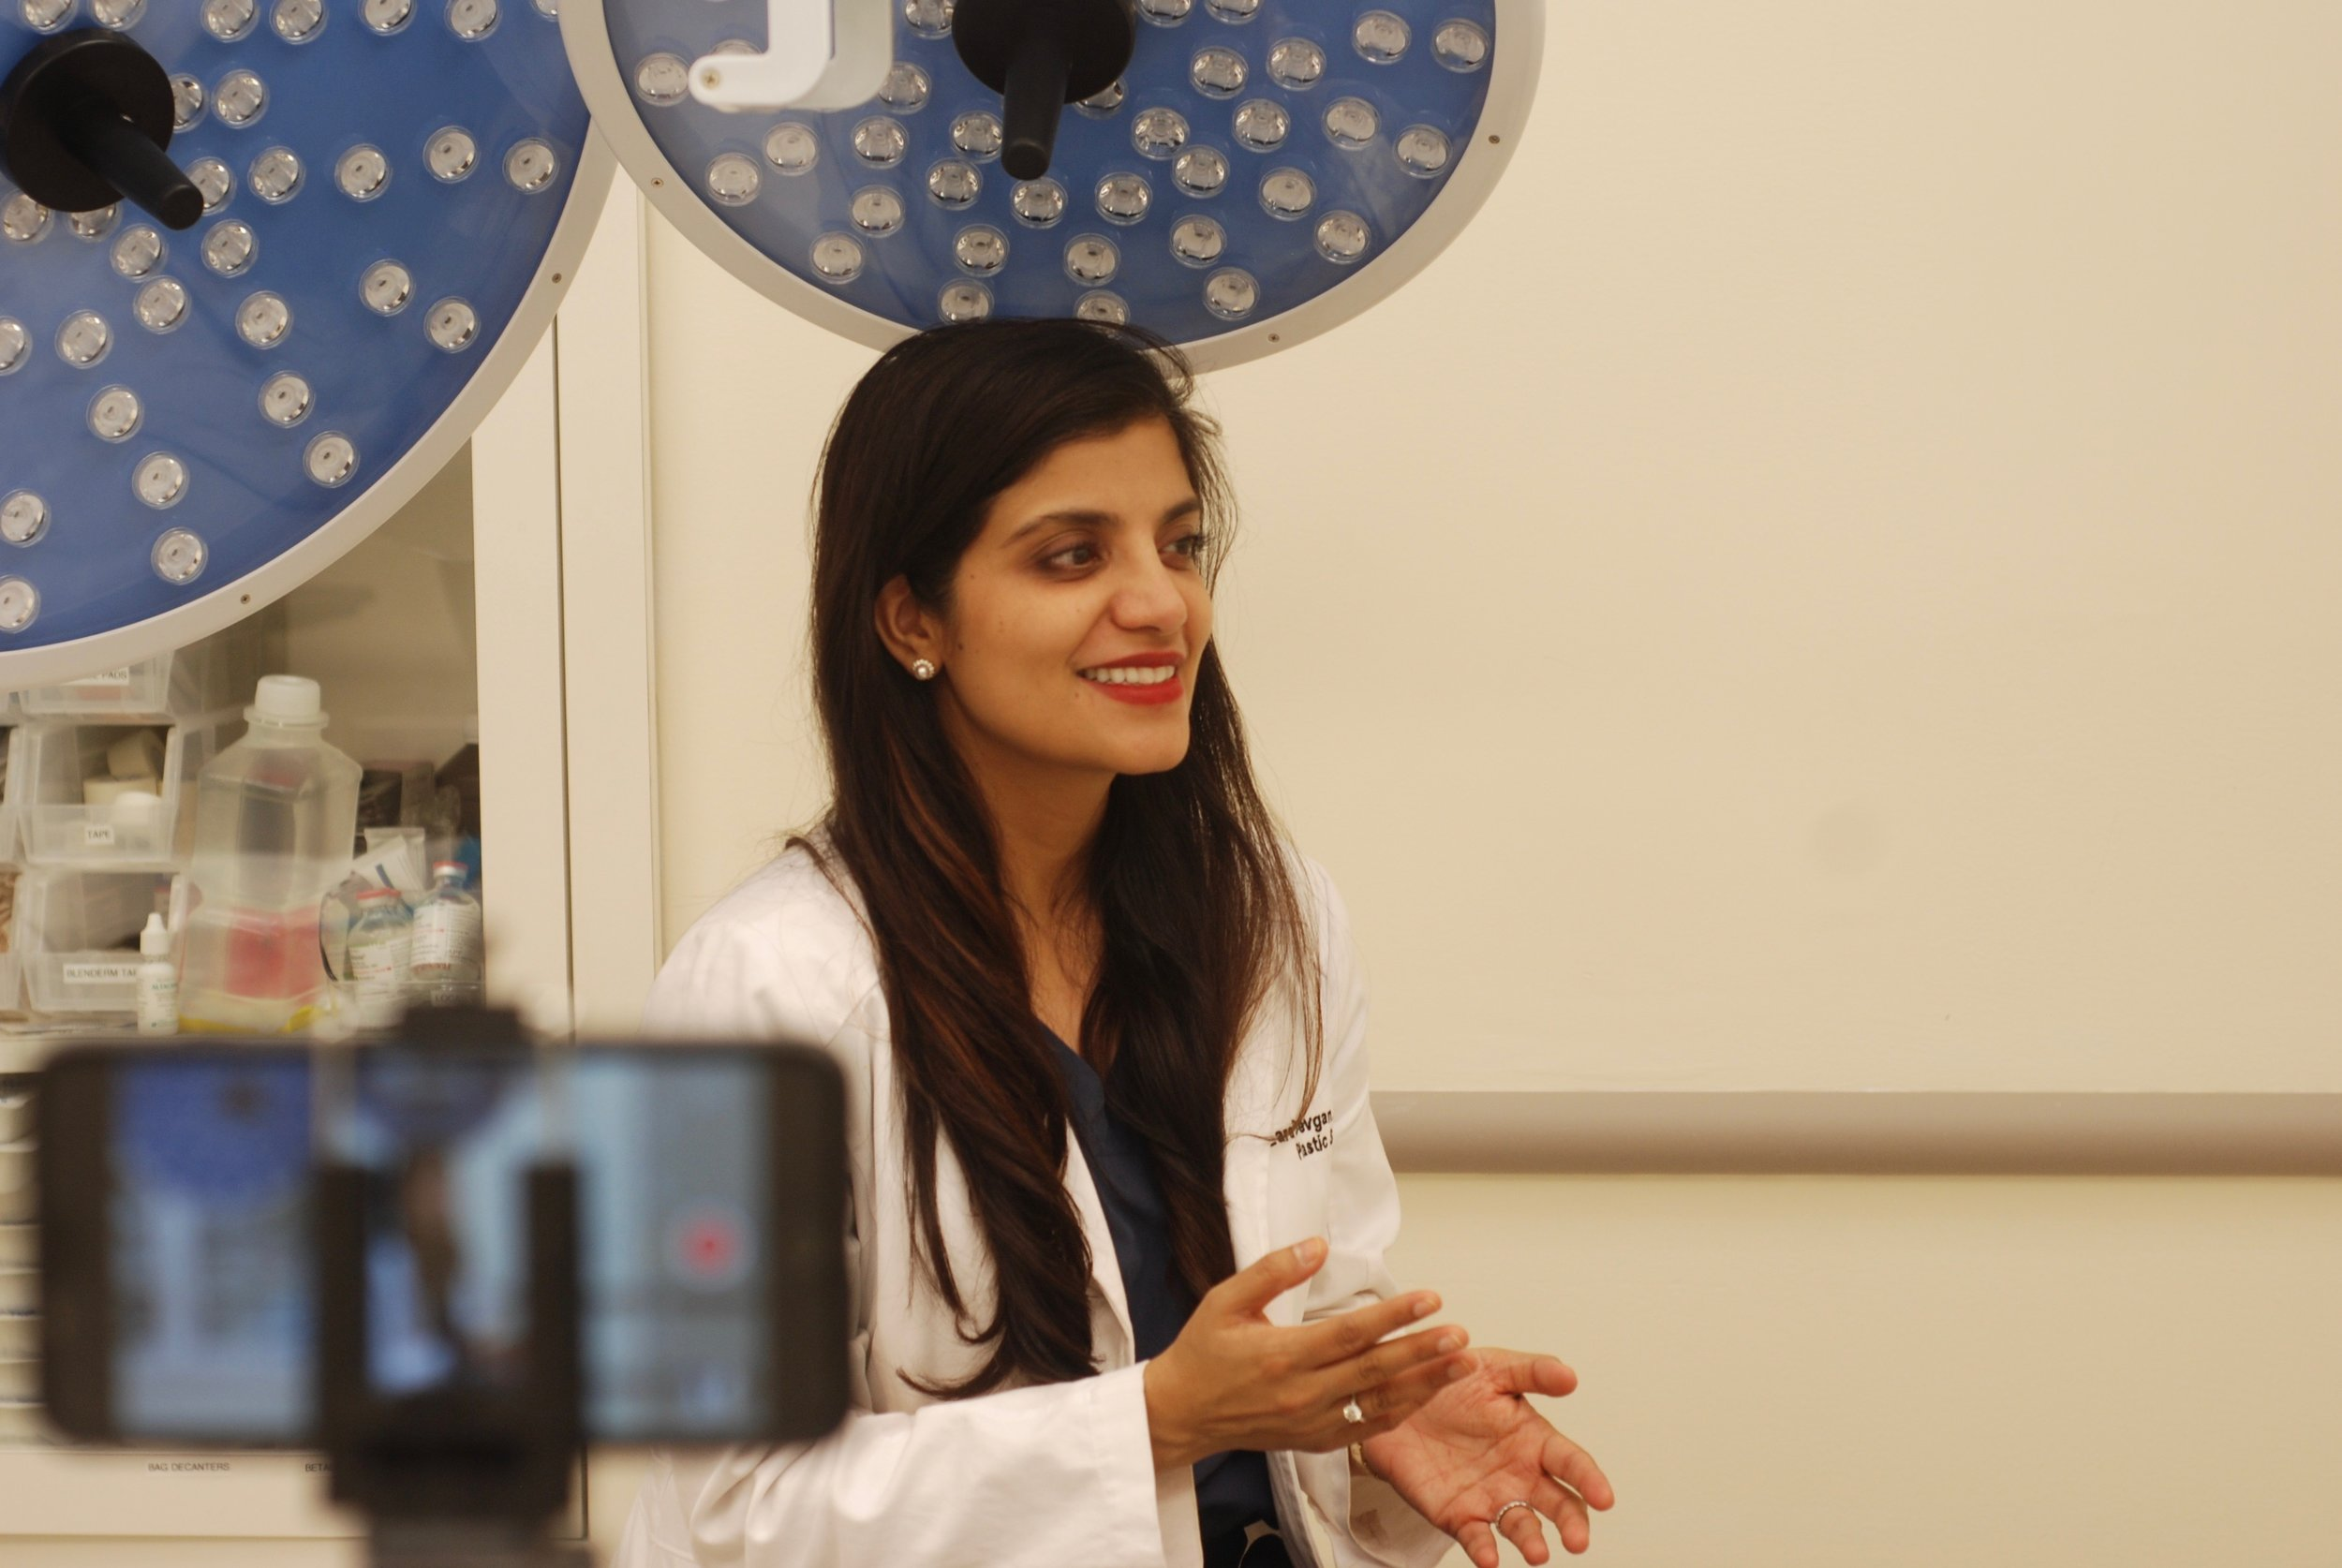 Dr. Devgan at her private practice, Upper East Side, New York, NY